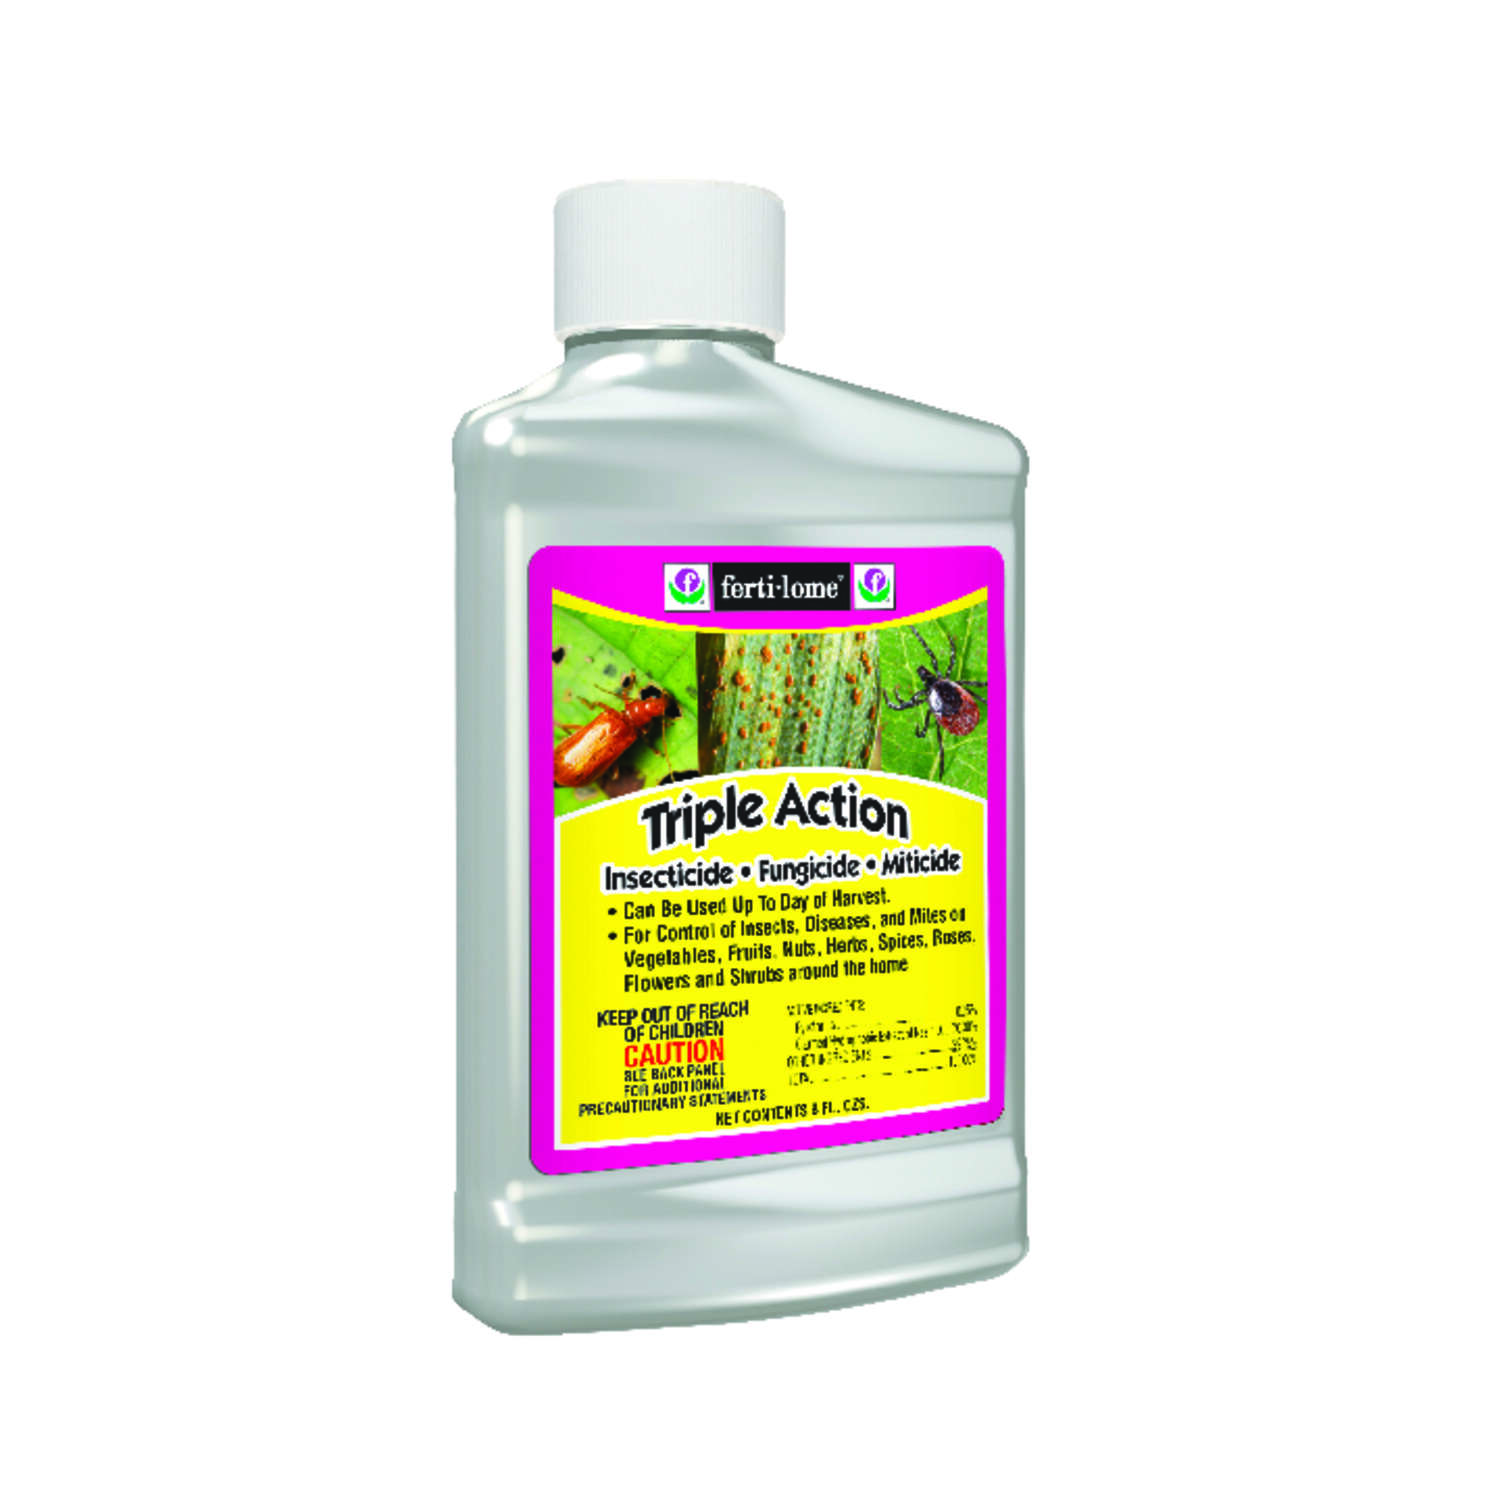 Ferti-Lome  Triple Action  Liquid Concentrate  Insect, Disease & Mite Control  8 oz.